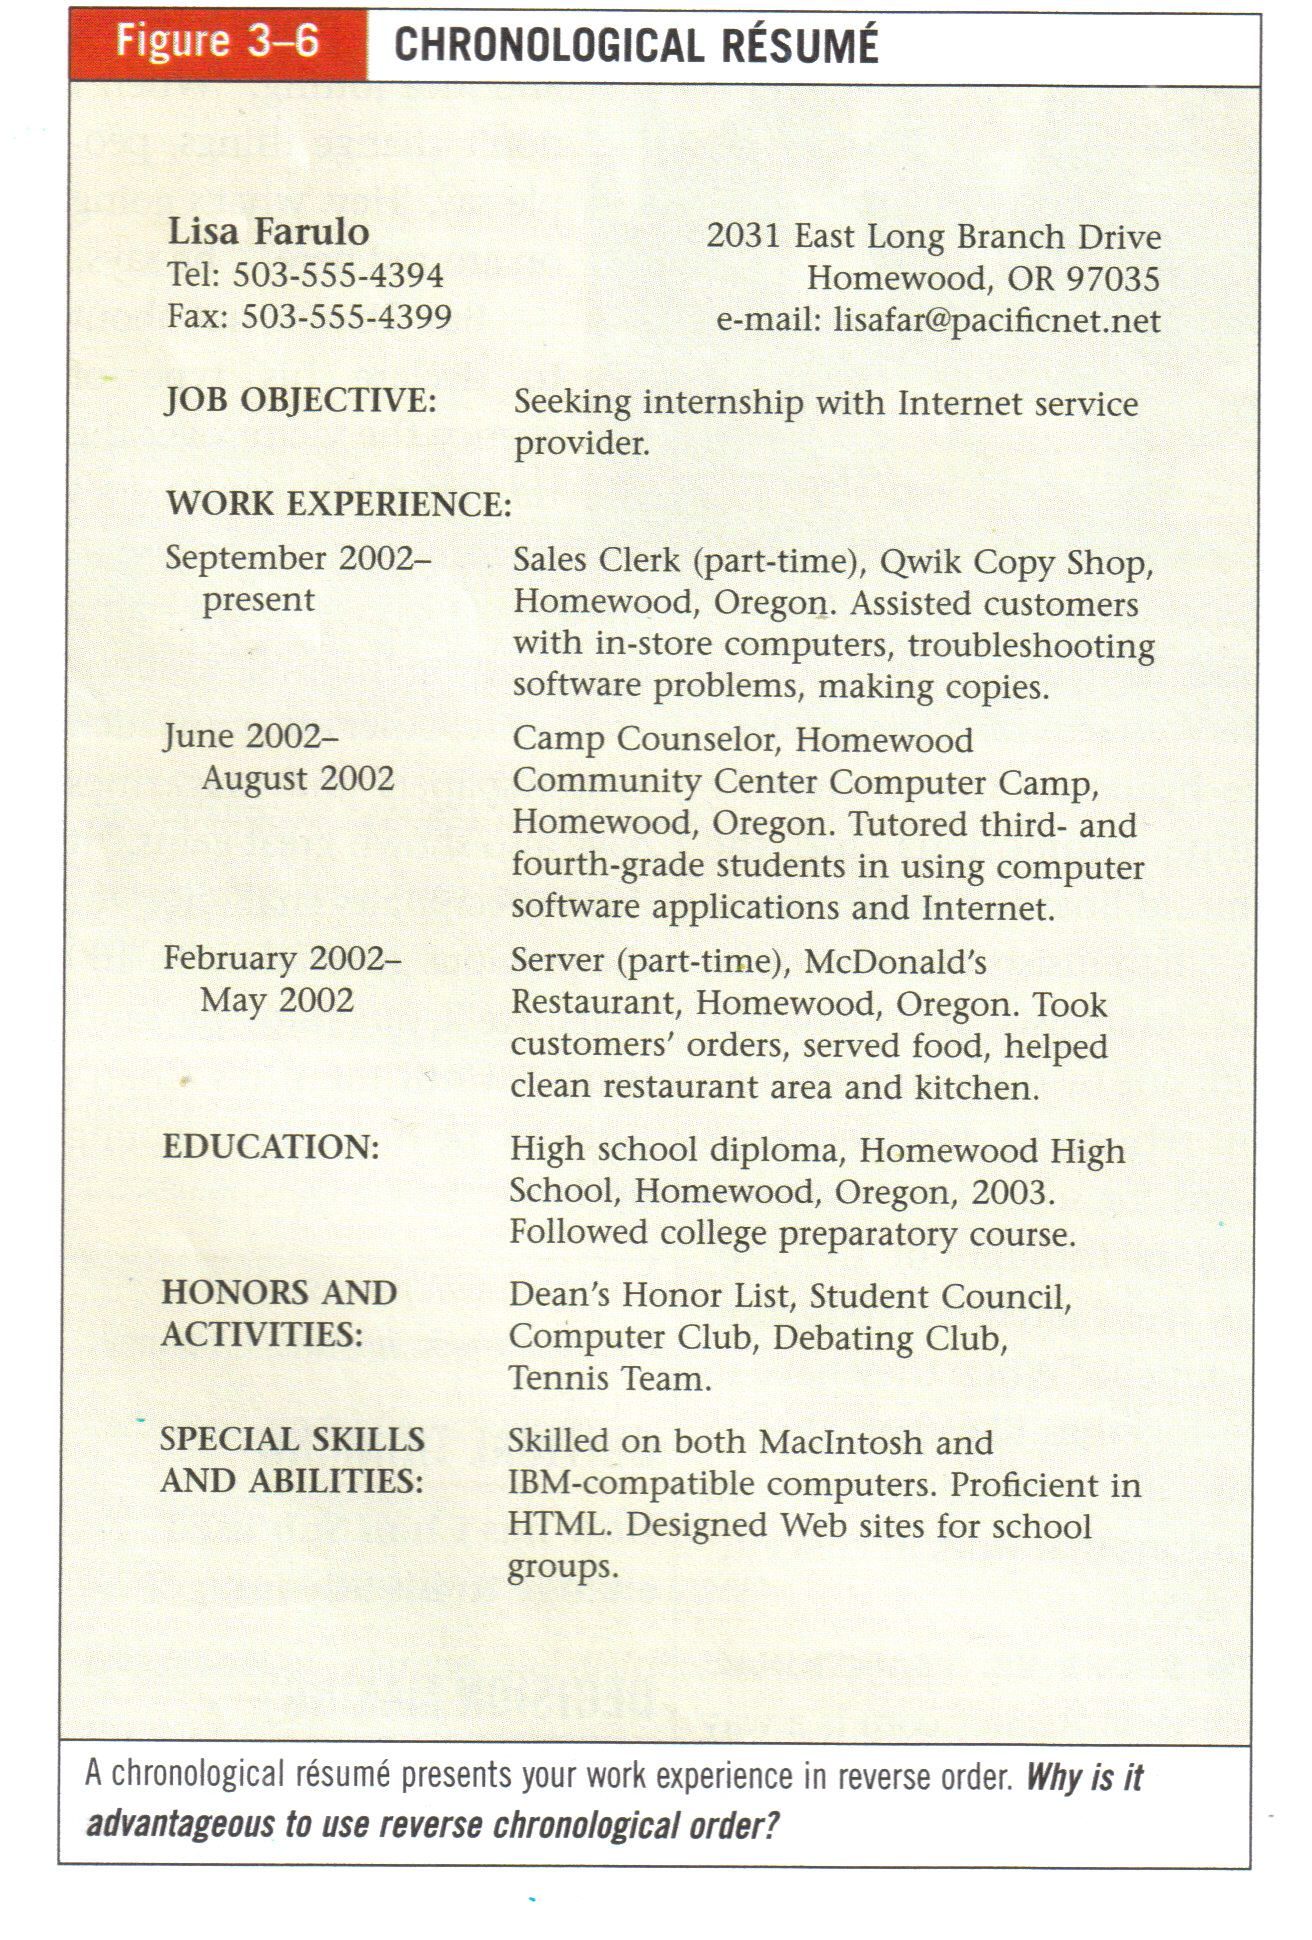 sample chronological resume | career development teaching ideas ... - Chronological Resume Examples